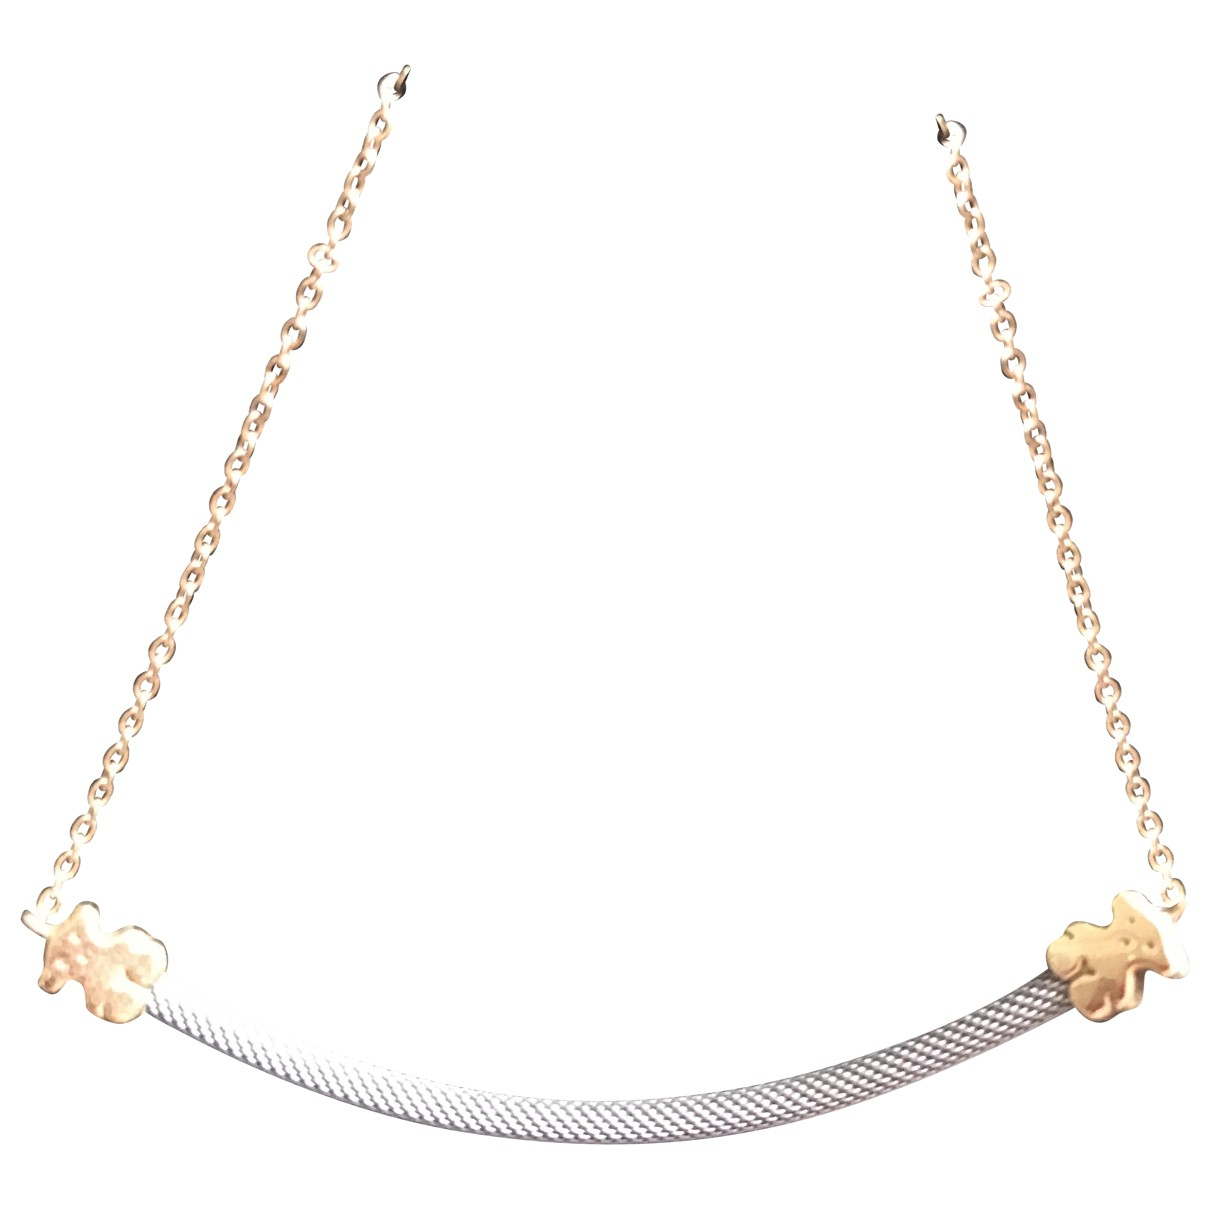 Atelier Tous \N Gold Yellow gold necklace for Women \N